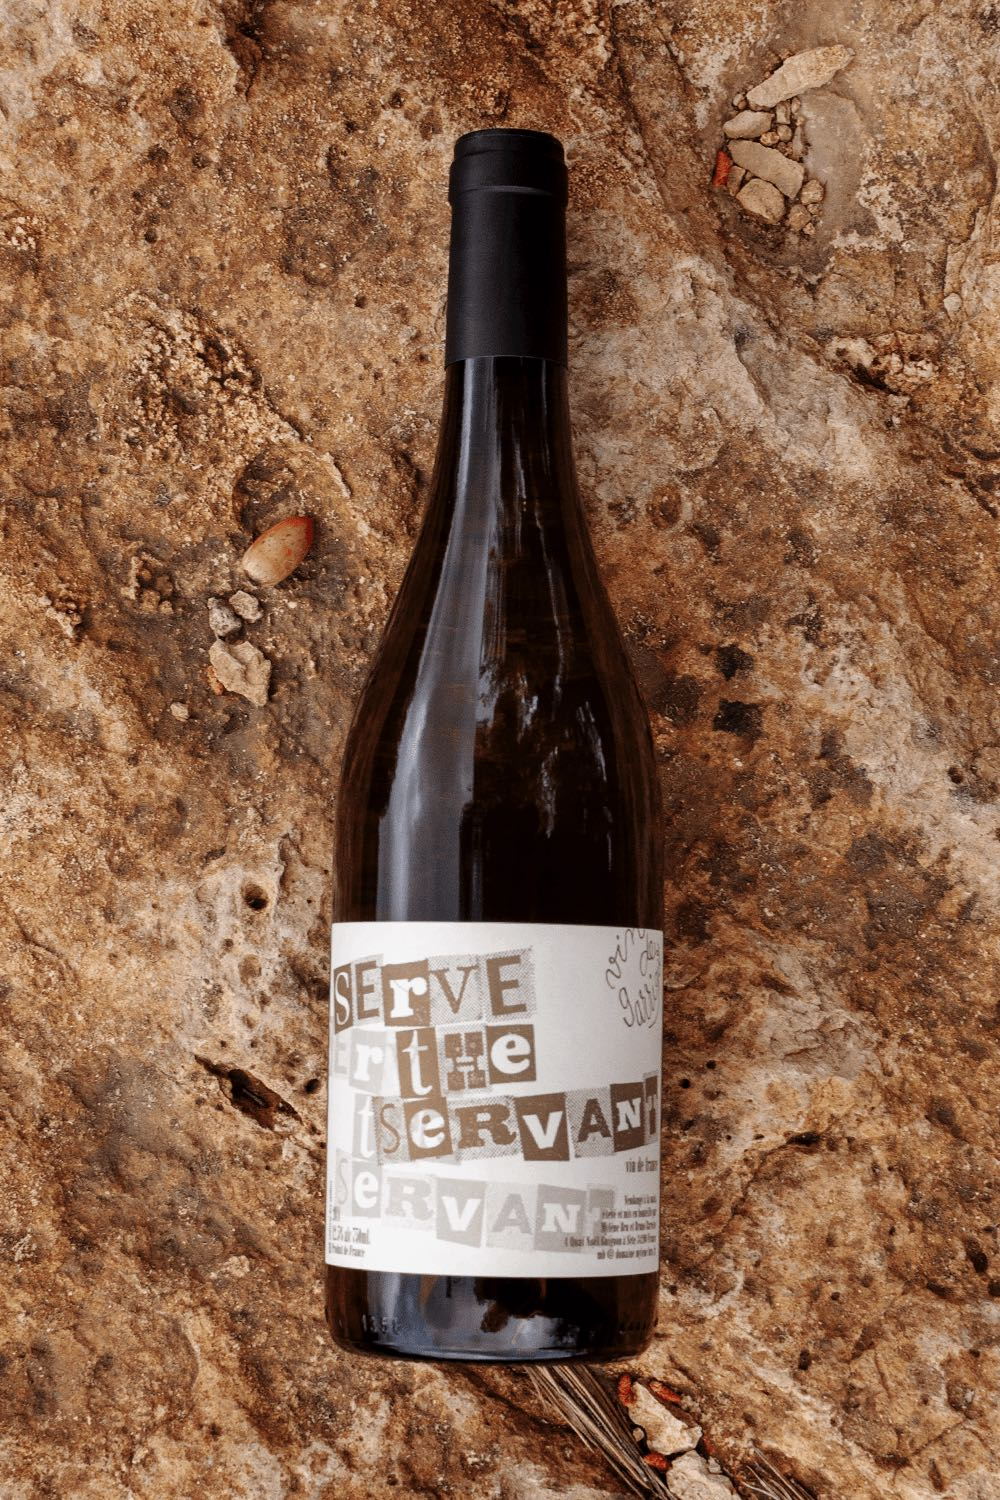 Serve the Servant - Domaine Mylène Bru - Vin nature - Vin de guarrigue